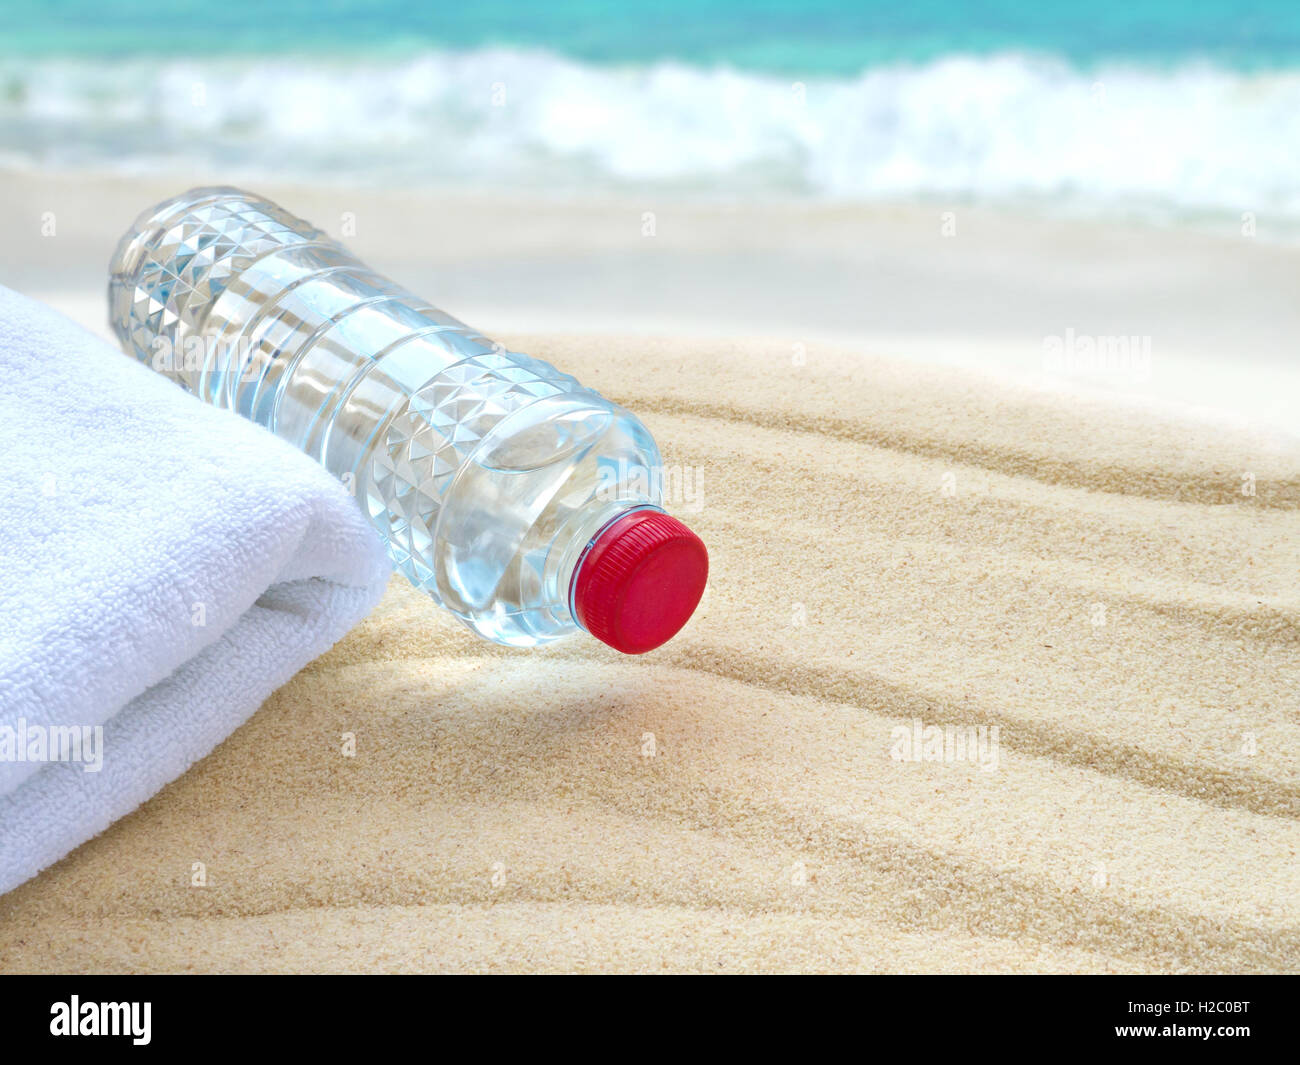 Mineral water bottle and towel on the beach - Stock Image